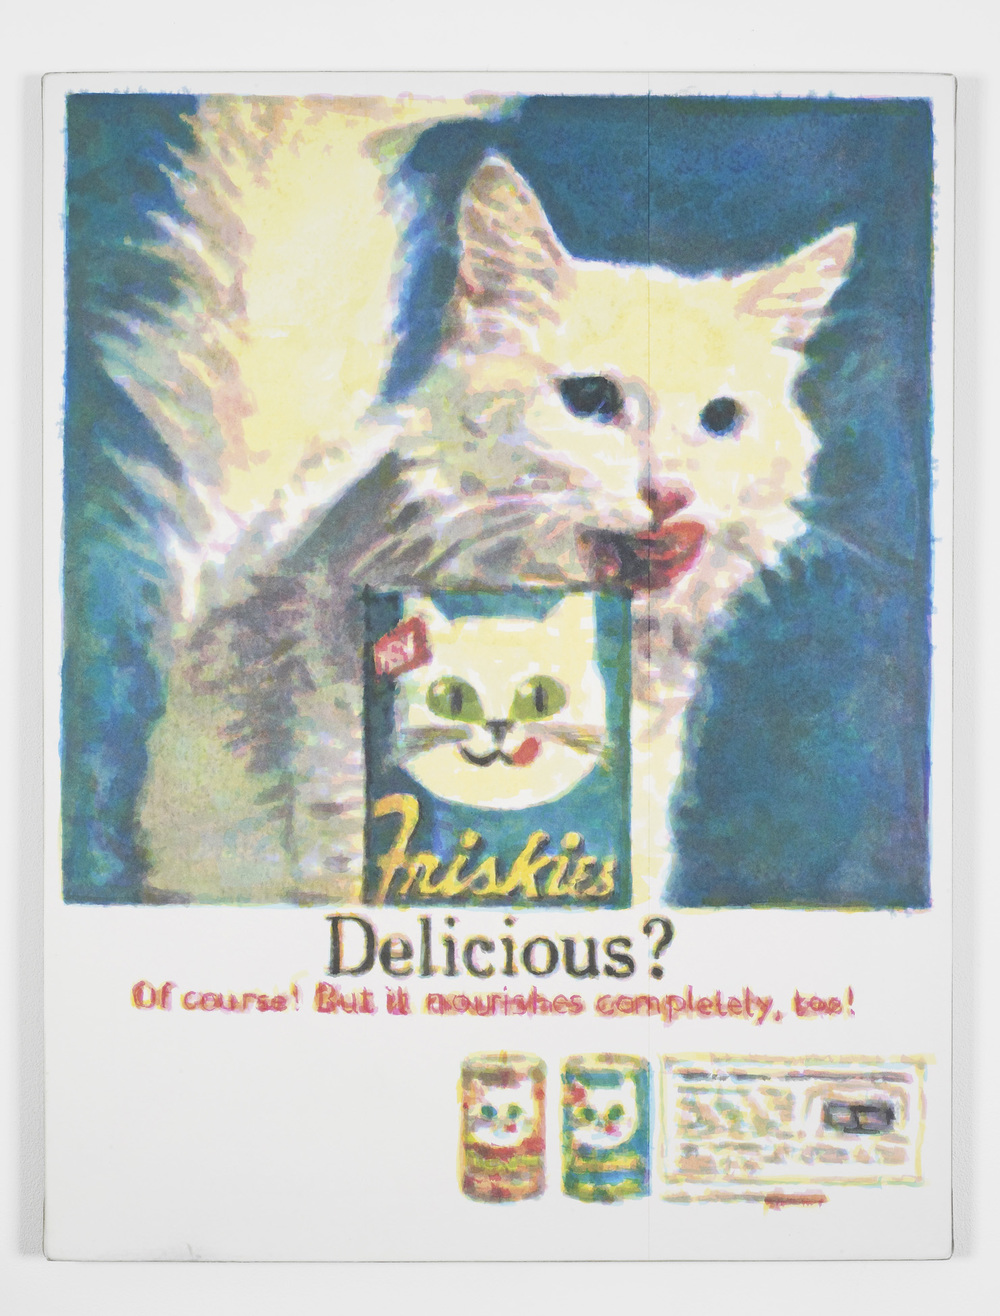 Delicious (1970's)  2014  Hand-painted inkjet inks on fibre paper and linen  110 x 80 cm / 43.3 x 31.4 in